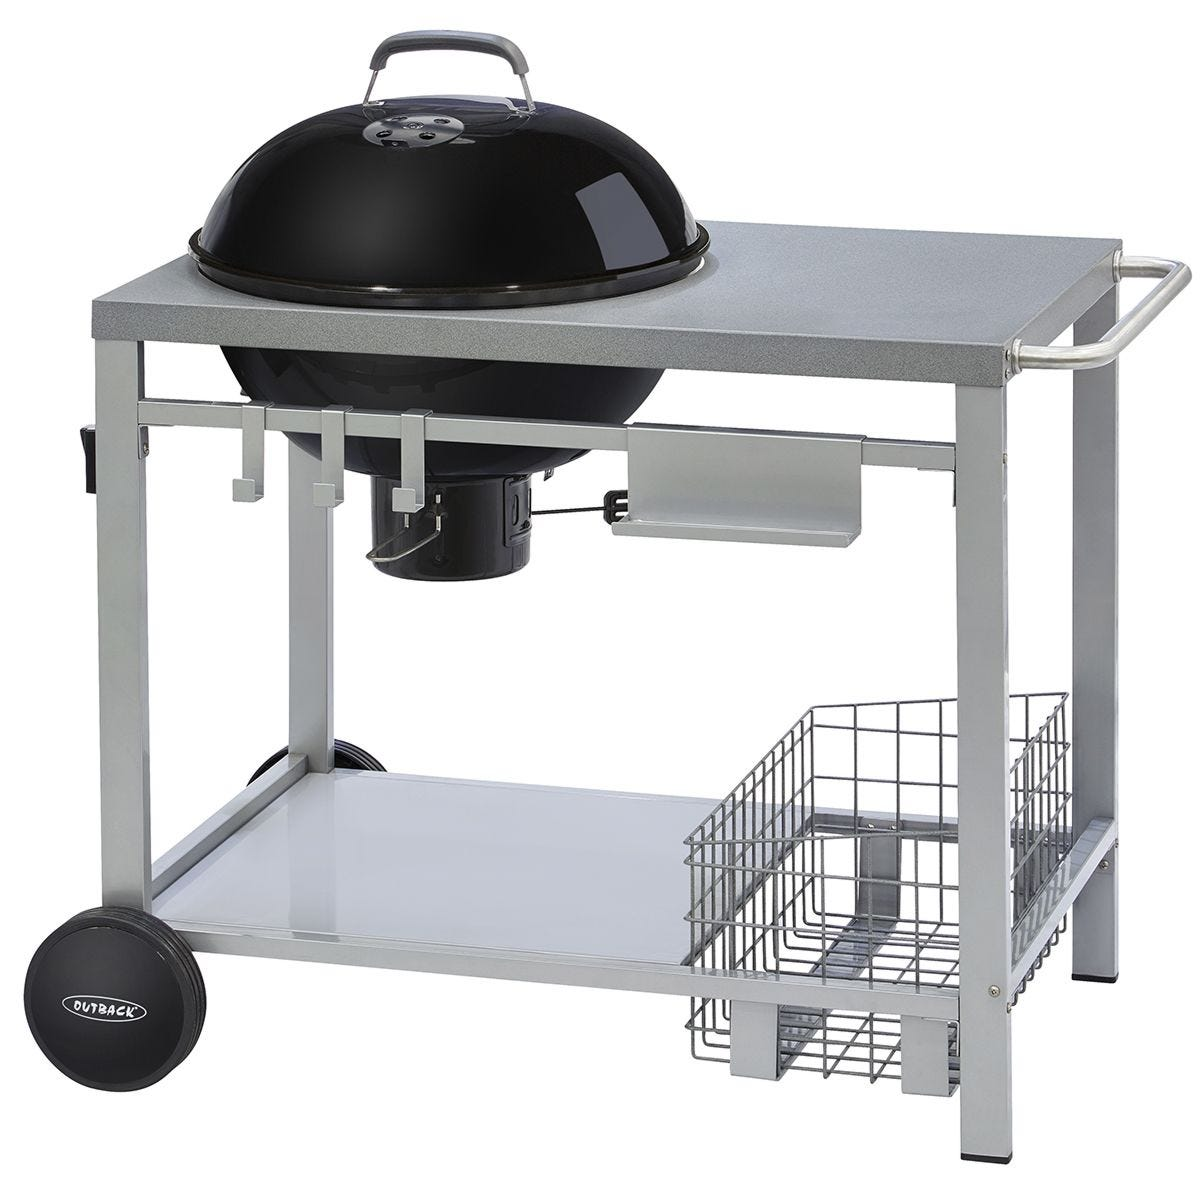 Outback Charcoal Kettle Trolley BBQ